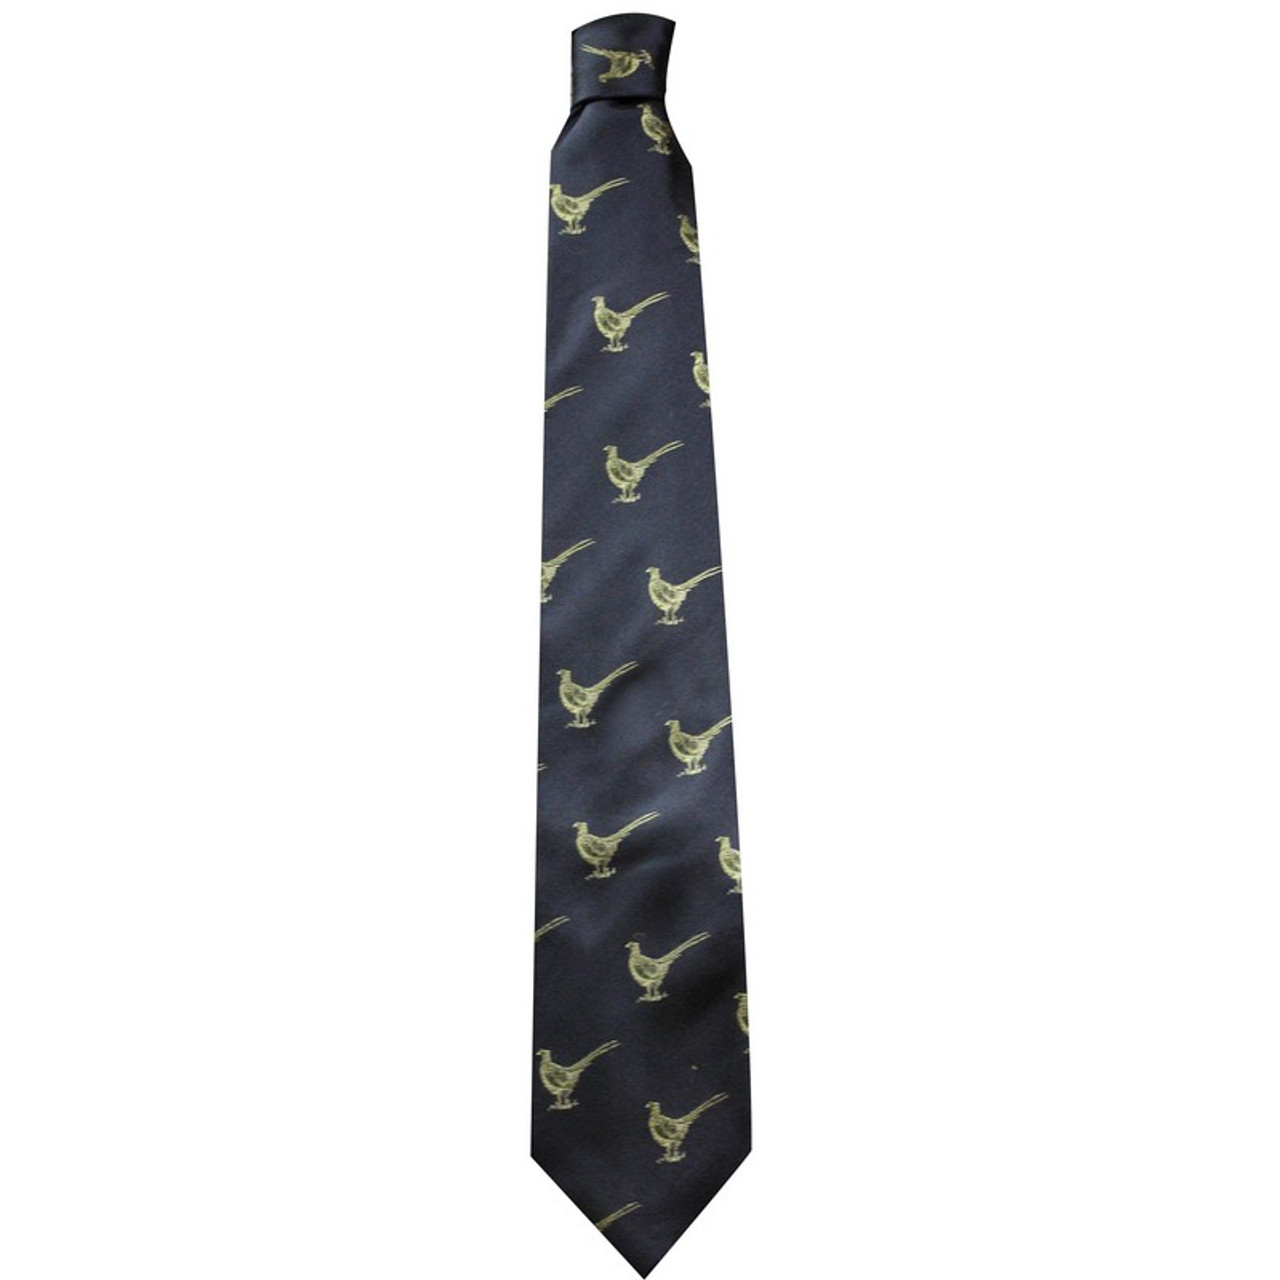 Best price for Silk Tie by Bisley, featuring pheasant design, available in blue or green, on sale at Bradford Stalker